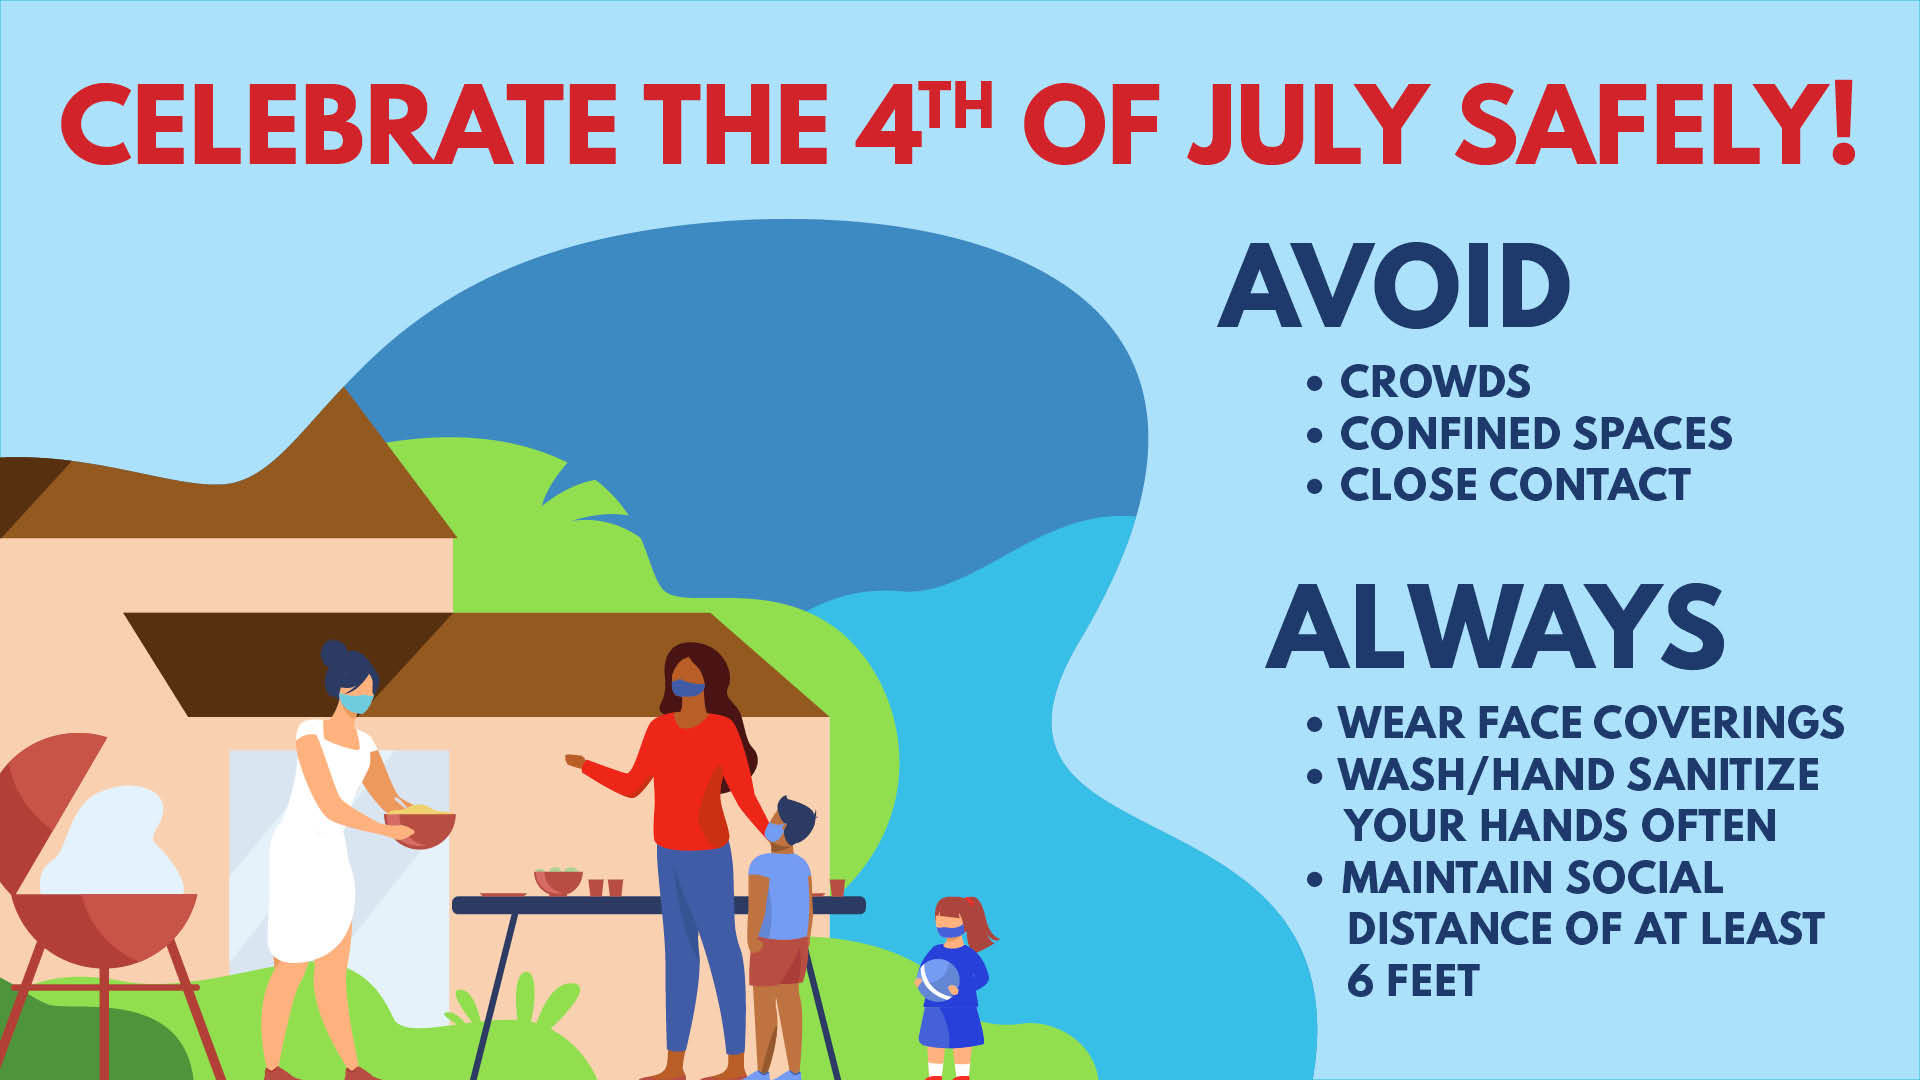 Celebrate the 4th of July Safely